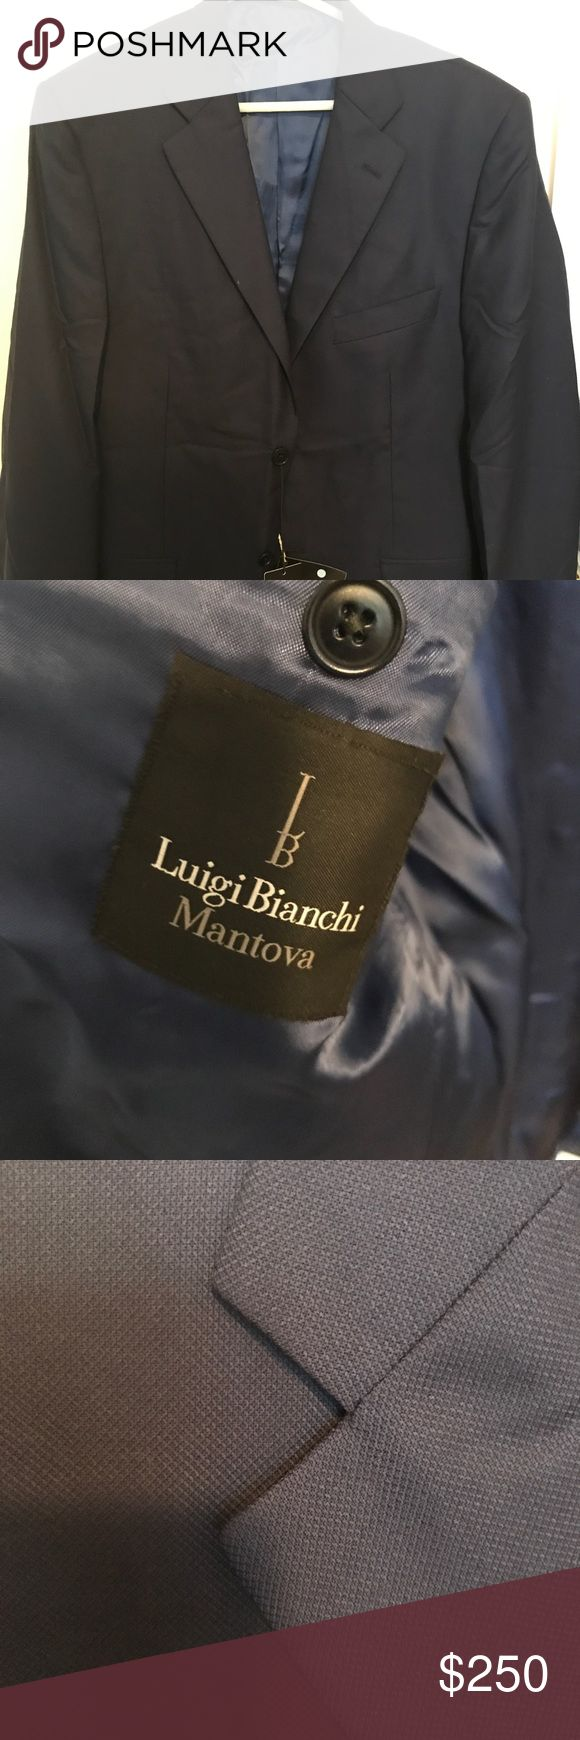 Luigi Bianchi Virgin Wool Blue Sports Jacket NWT Made in Italy - one of the most famous men's designer wear - 100% wool sports jacket by Luigi Bianchi Mantova Luigi Bianchi Mantova Suits & Blazers Sport Coats & Blazers